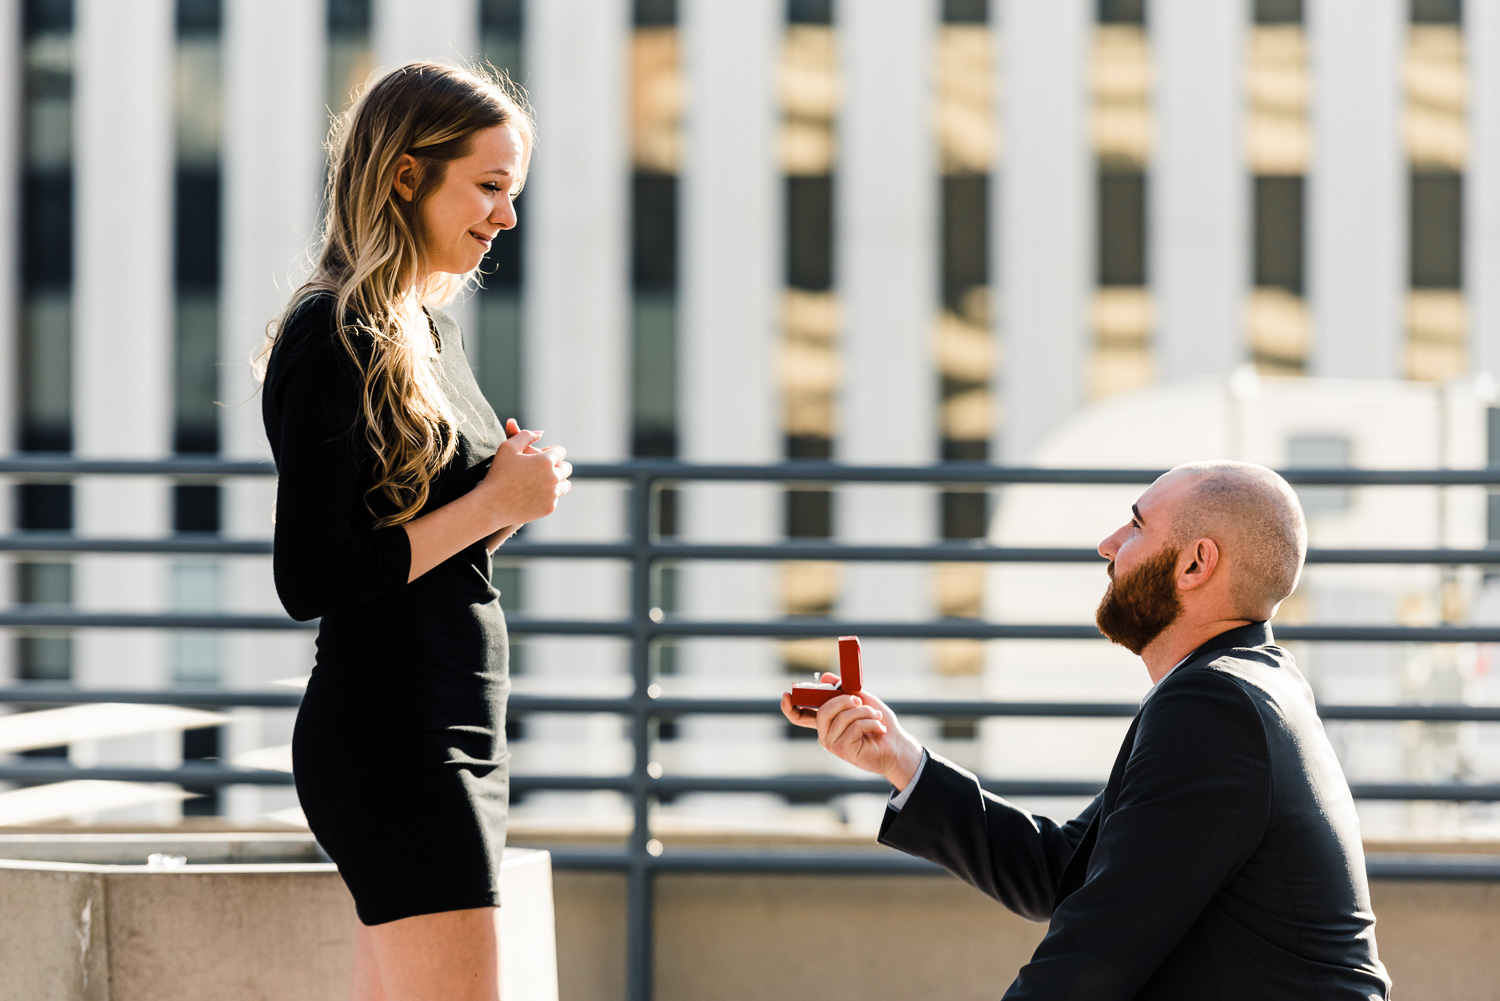 Downtown Phoenix Proposal Photo, Romantic Arizona Proposal Photo, Unique way to propose